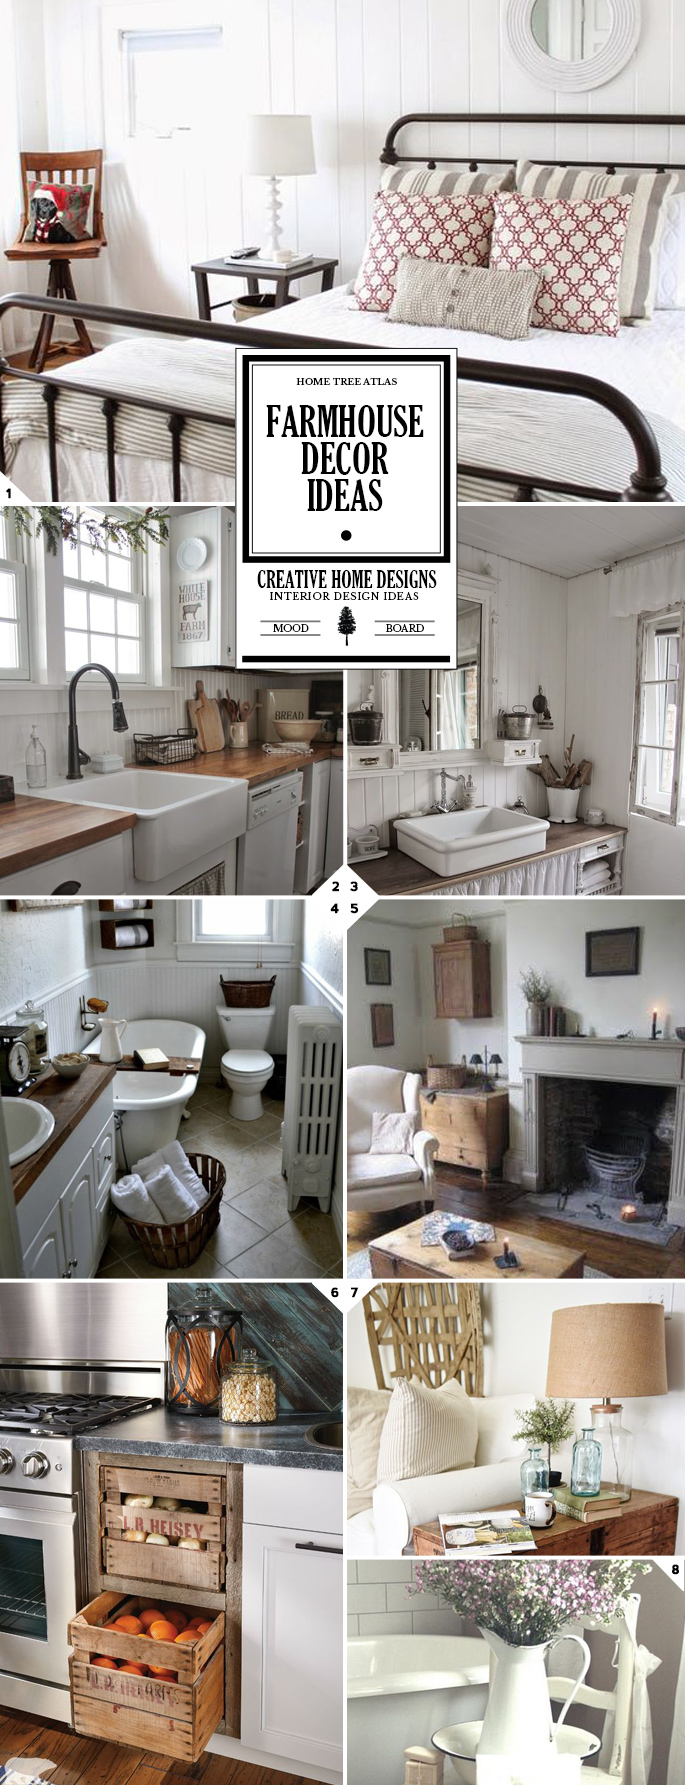 vintage and rustic farmhouse decor ideas design guide